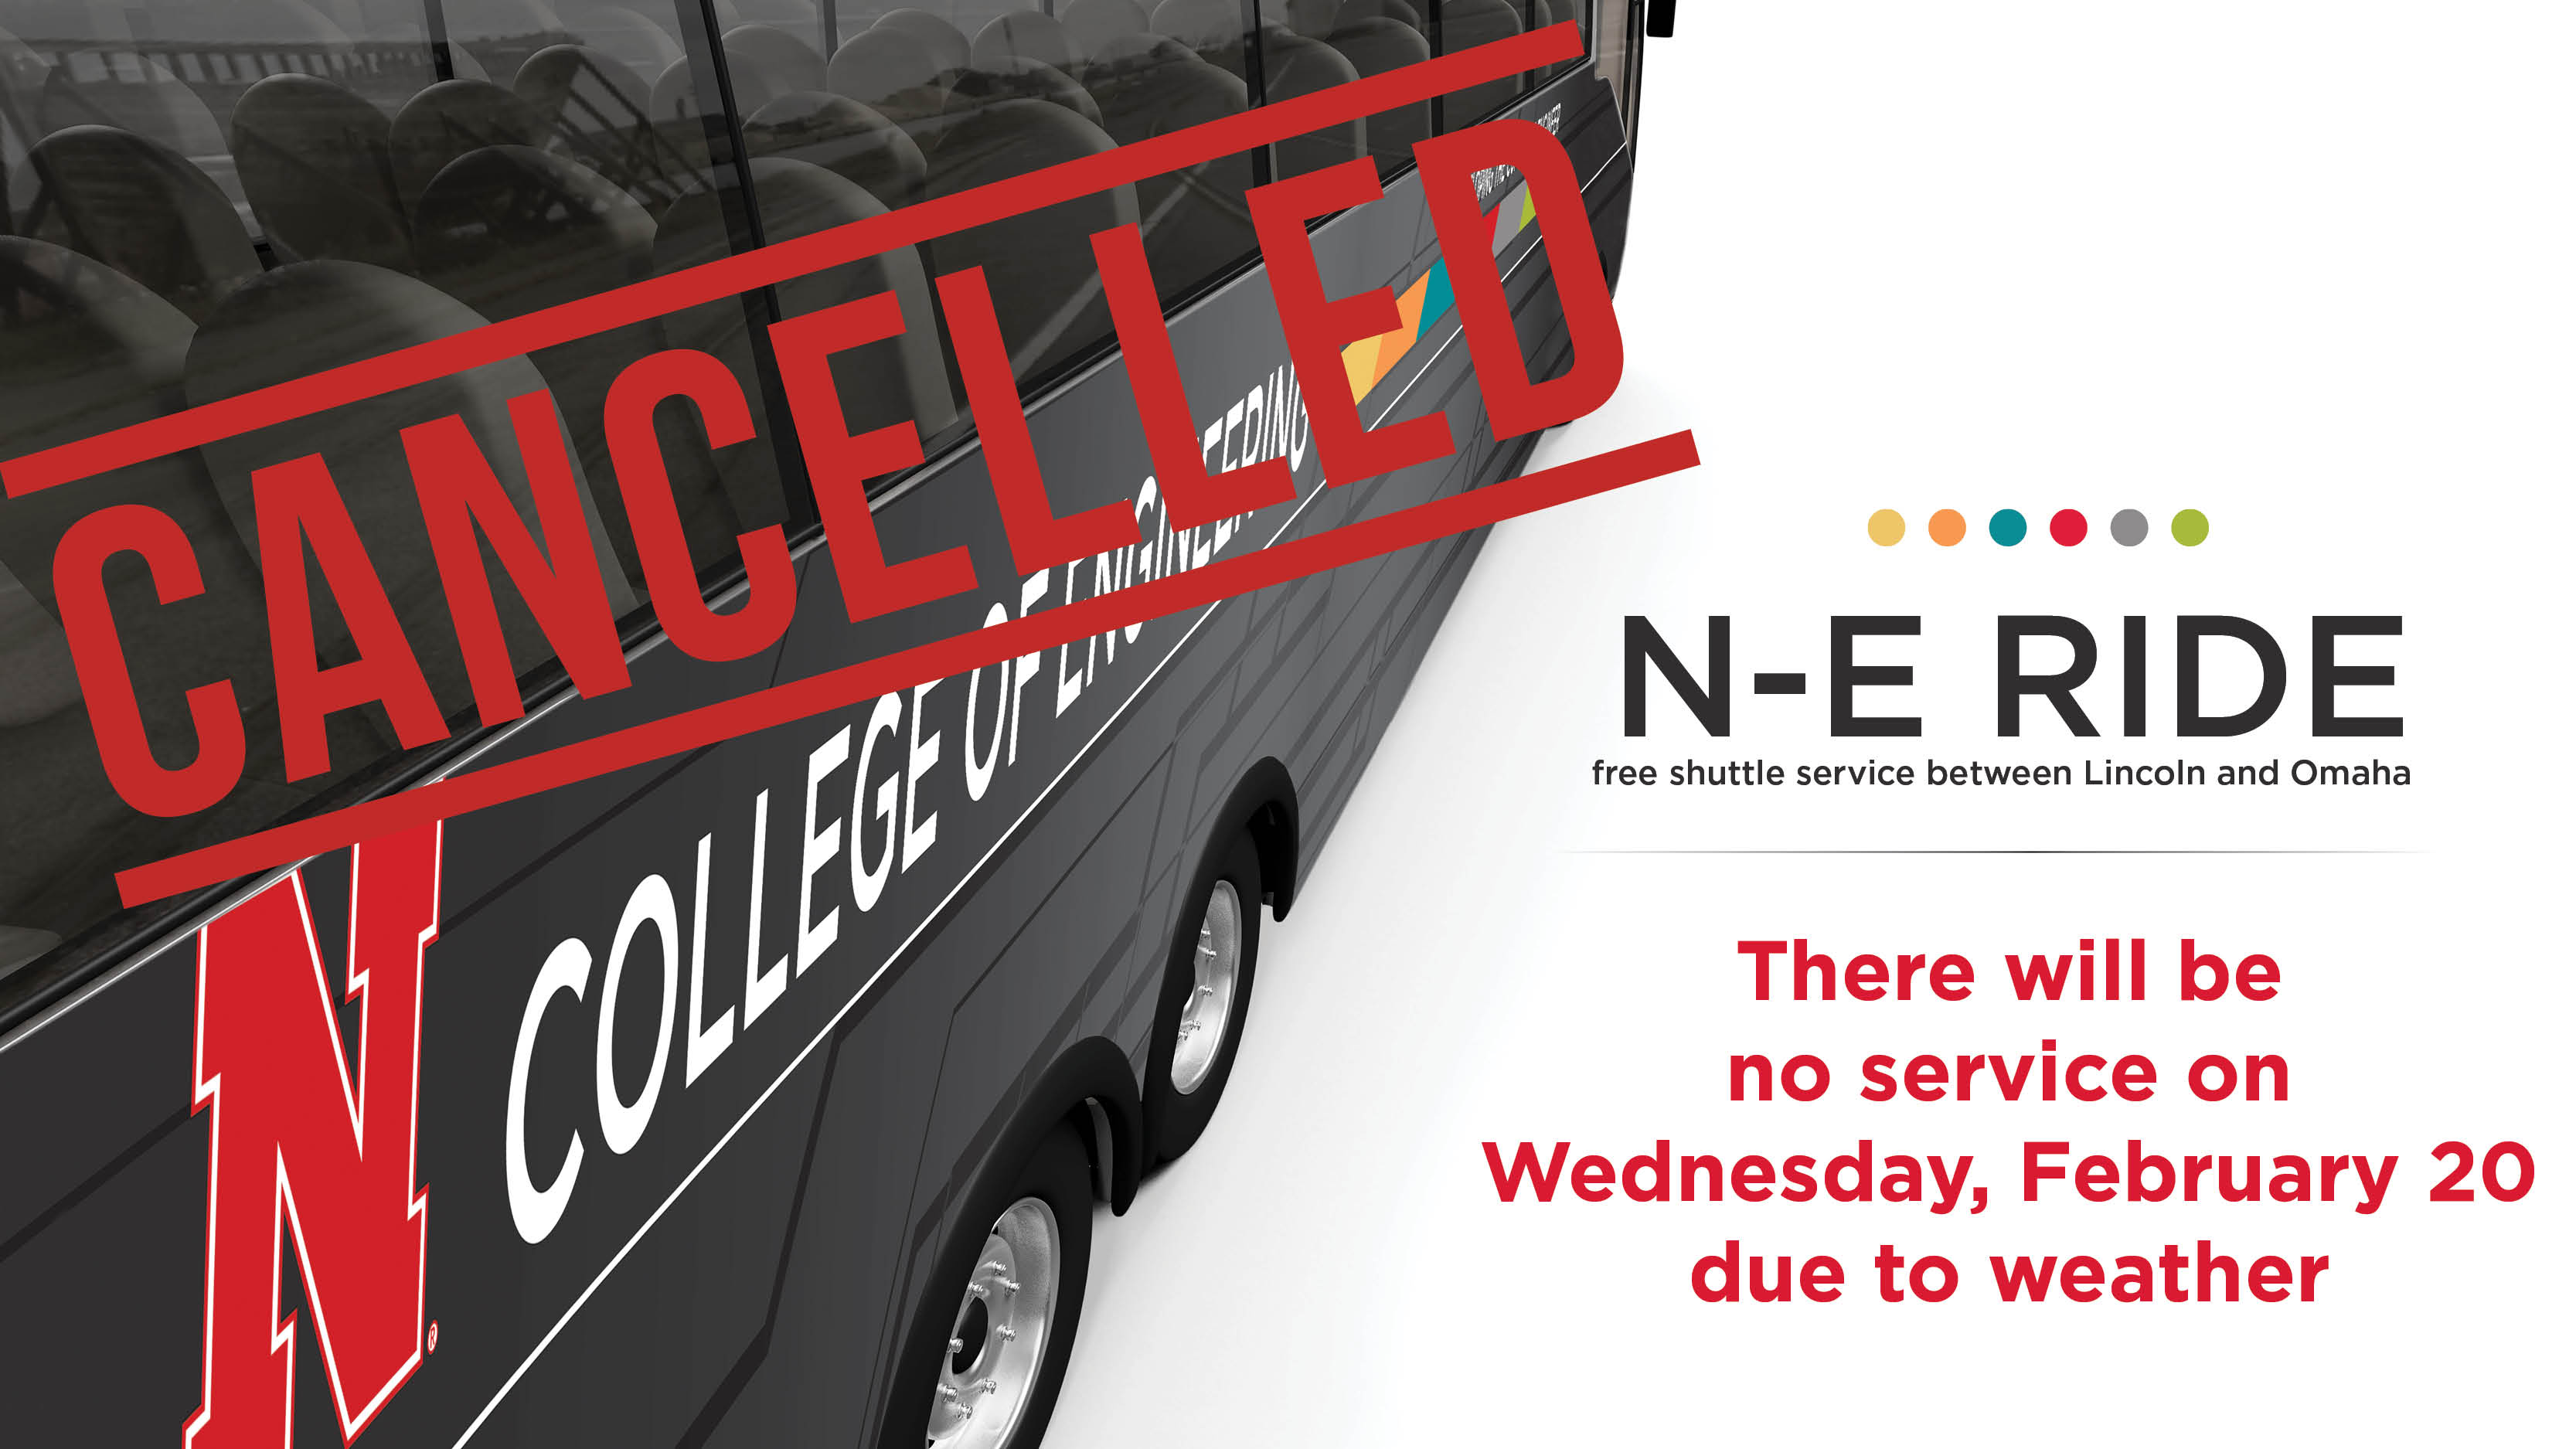 N-E Ride will not be in service Wednesday, Feb. 20.